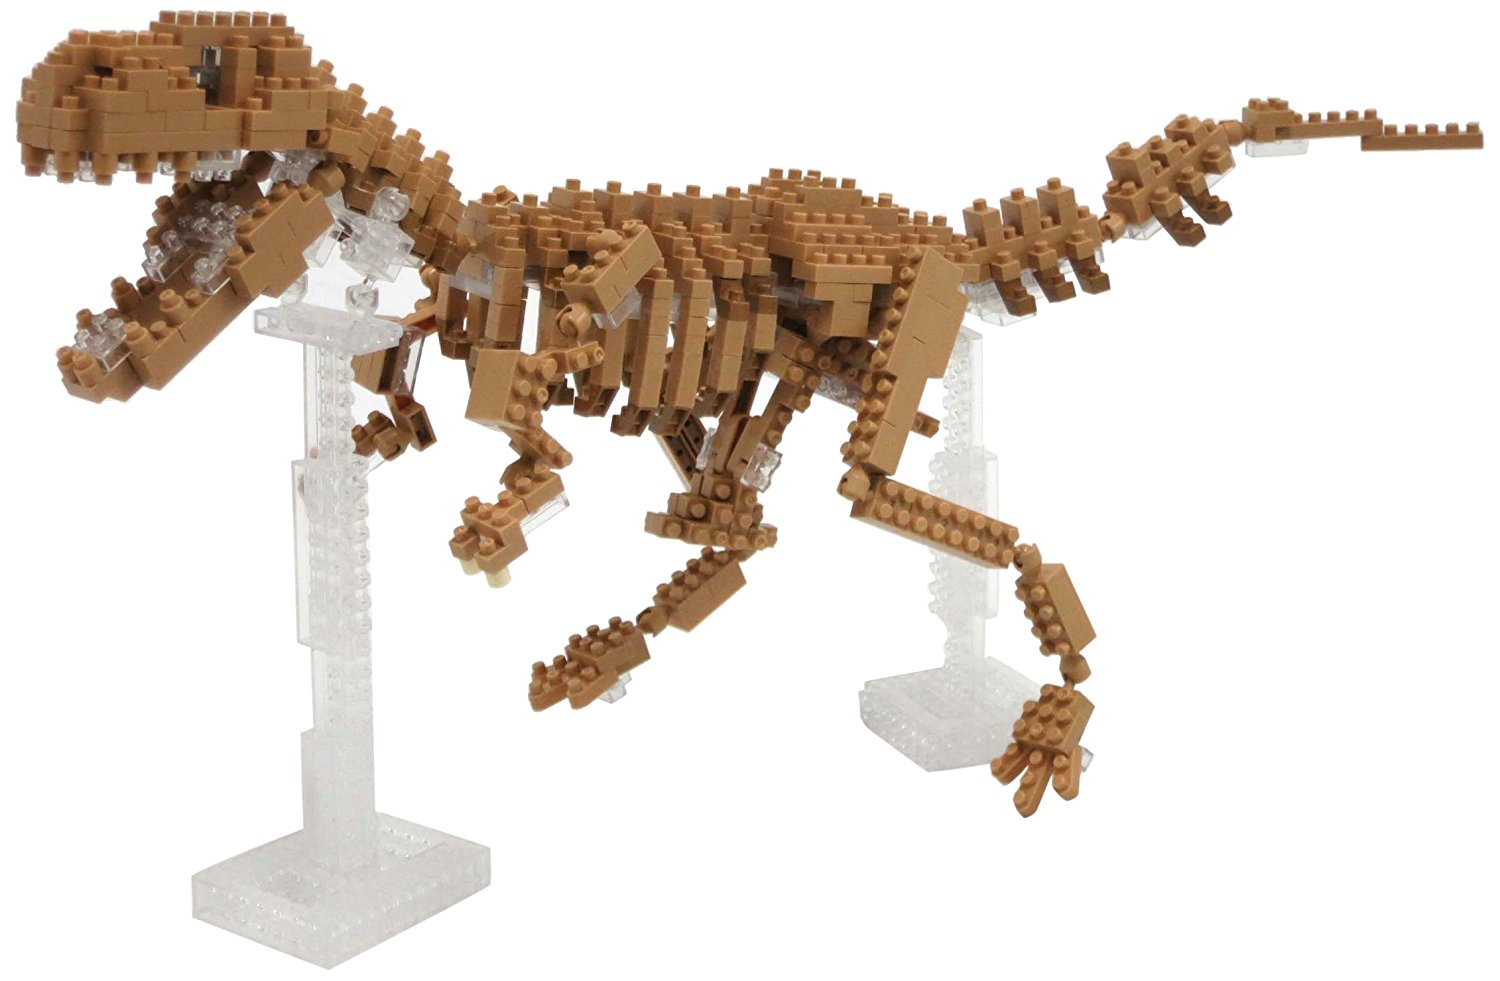 3d Jigsaw Puzzles, Over 600 Pieces Nanoblock T-rex Skeleton Kids Jigsaw Puzzle 3d by BY-NANOBLOCK